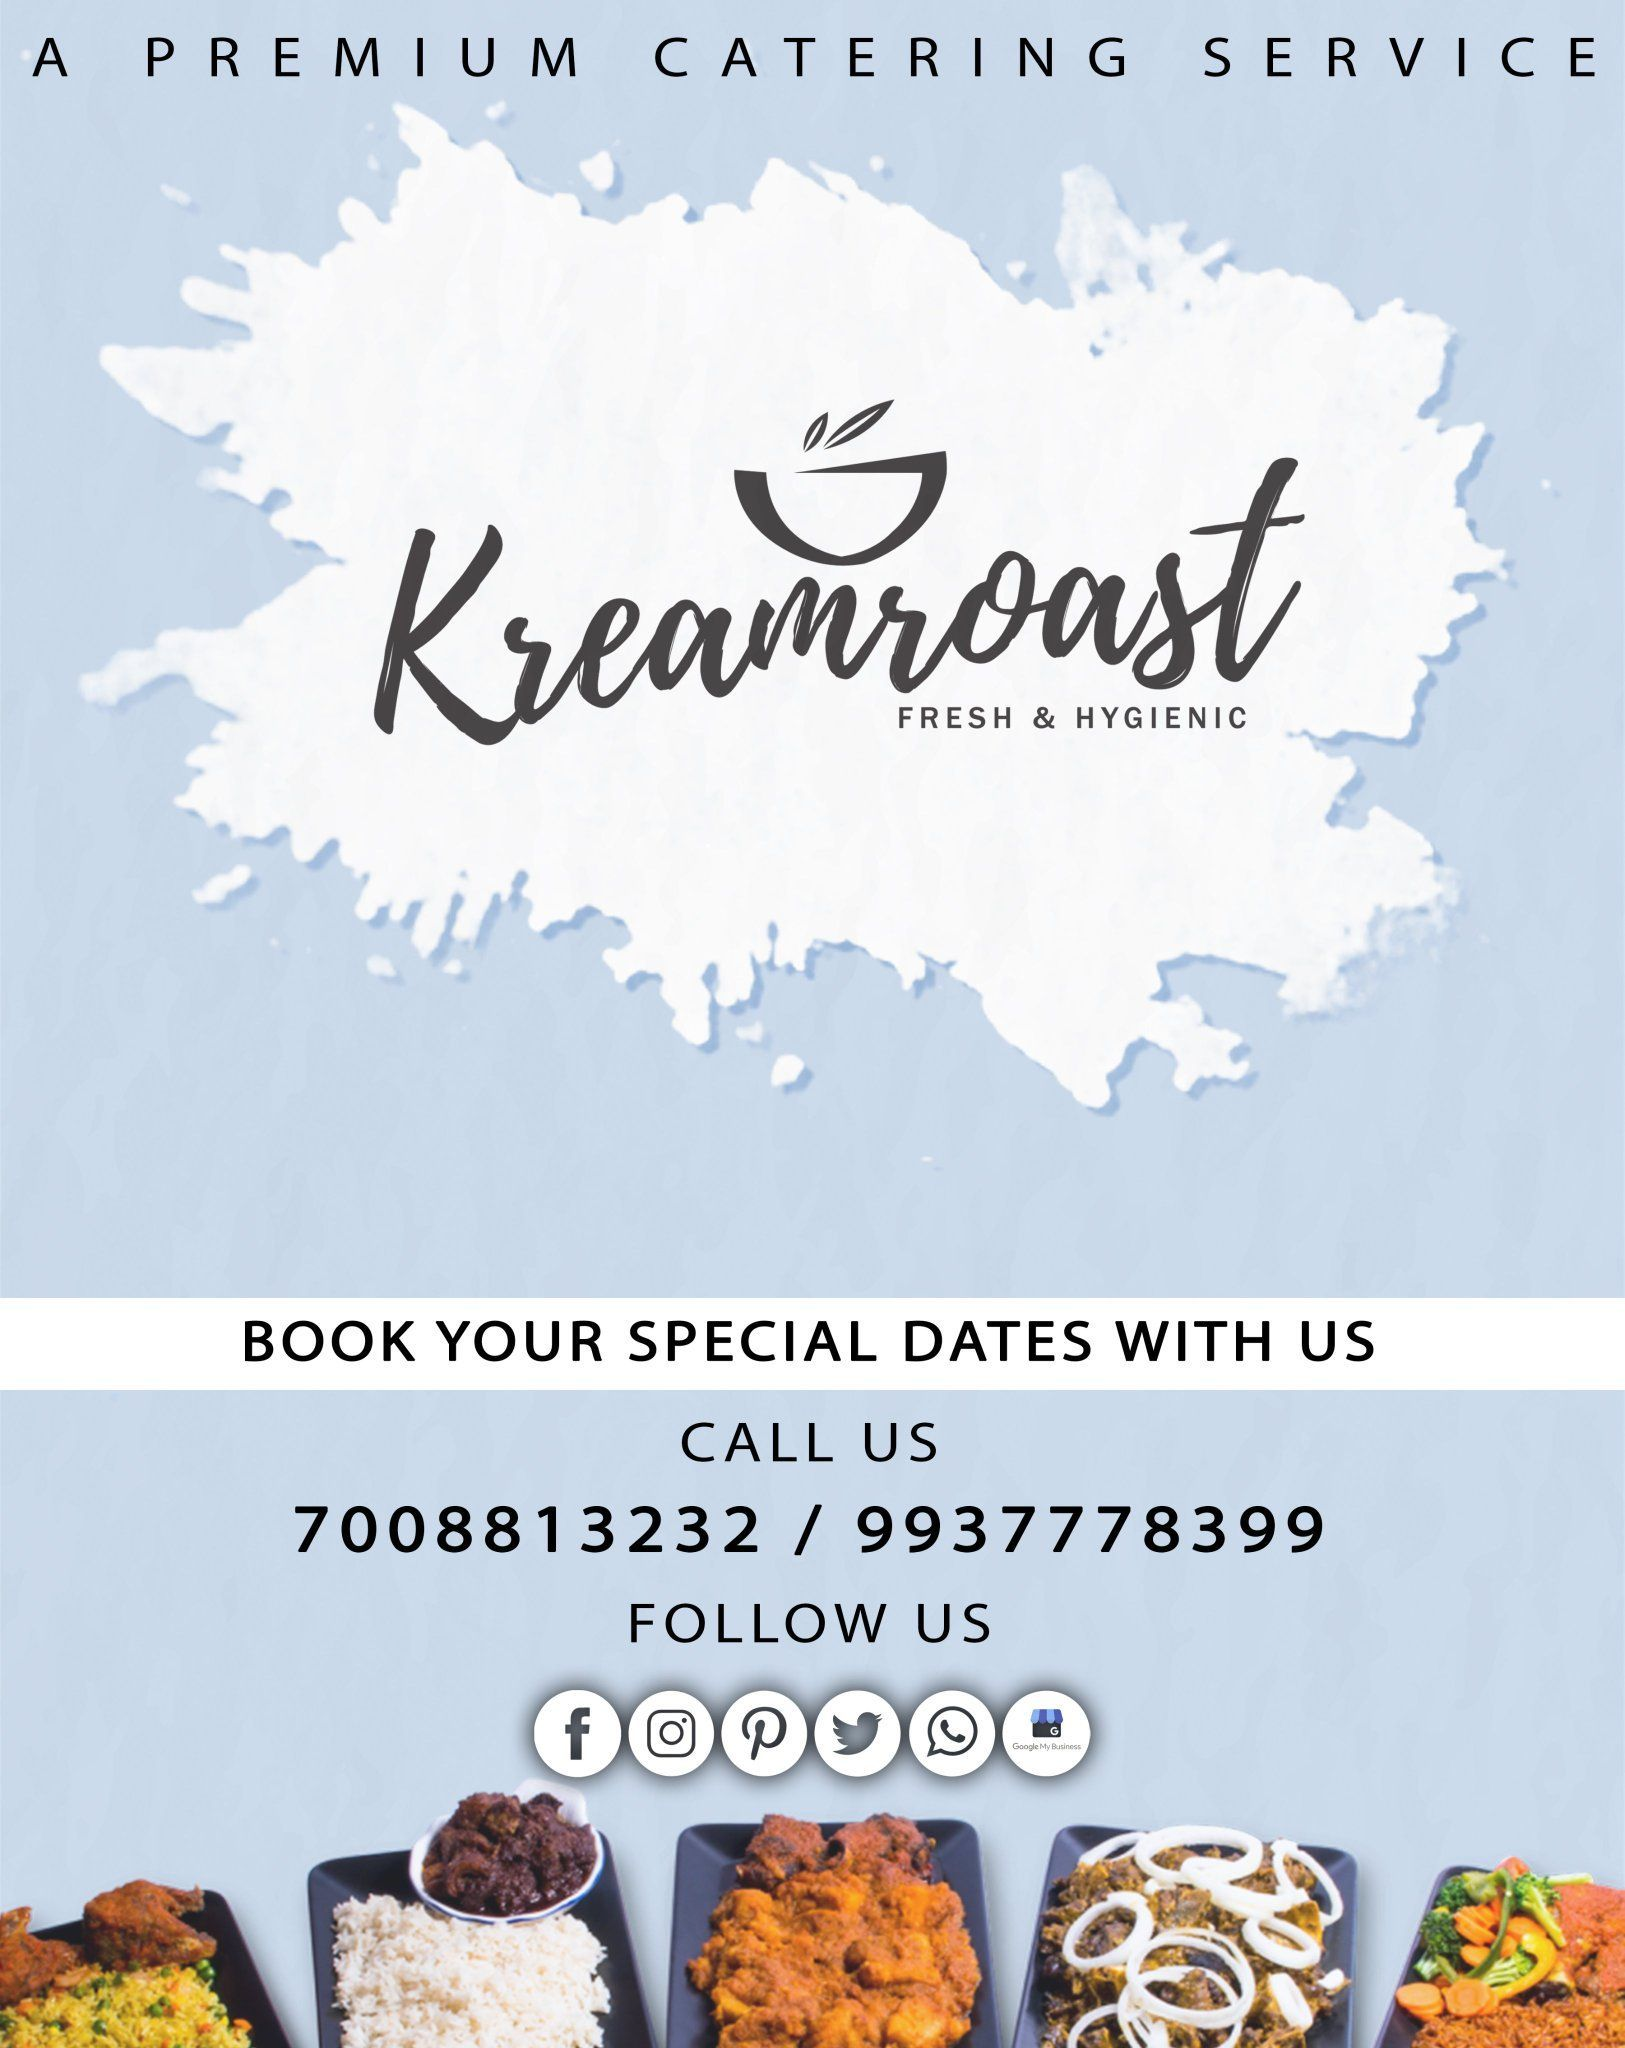 Do you need fresh  scrumptious food for your next event We cover your events with a premium service with hygienic foods   Book Today 9937778399  7008813232 Kreamroast Cat...